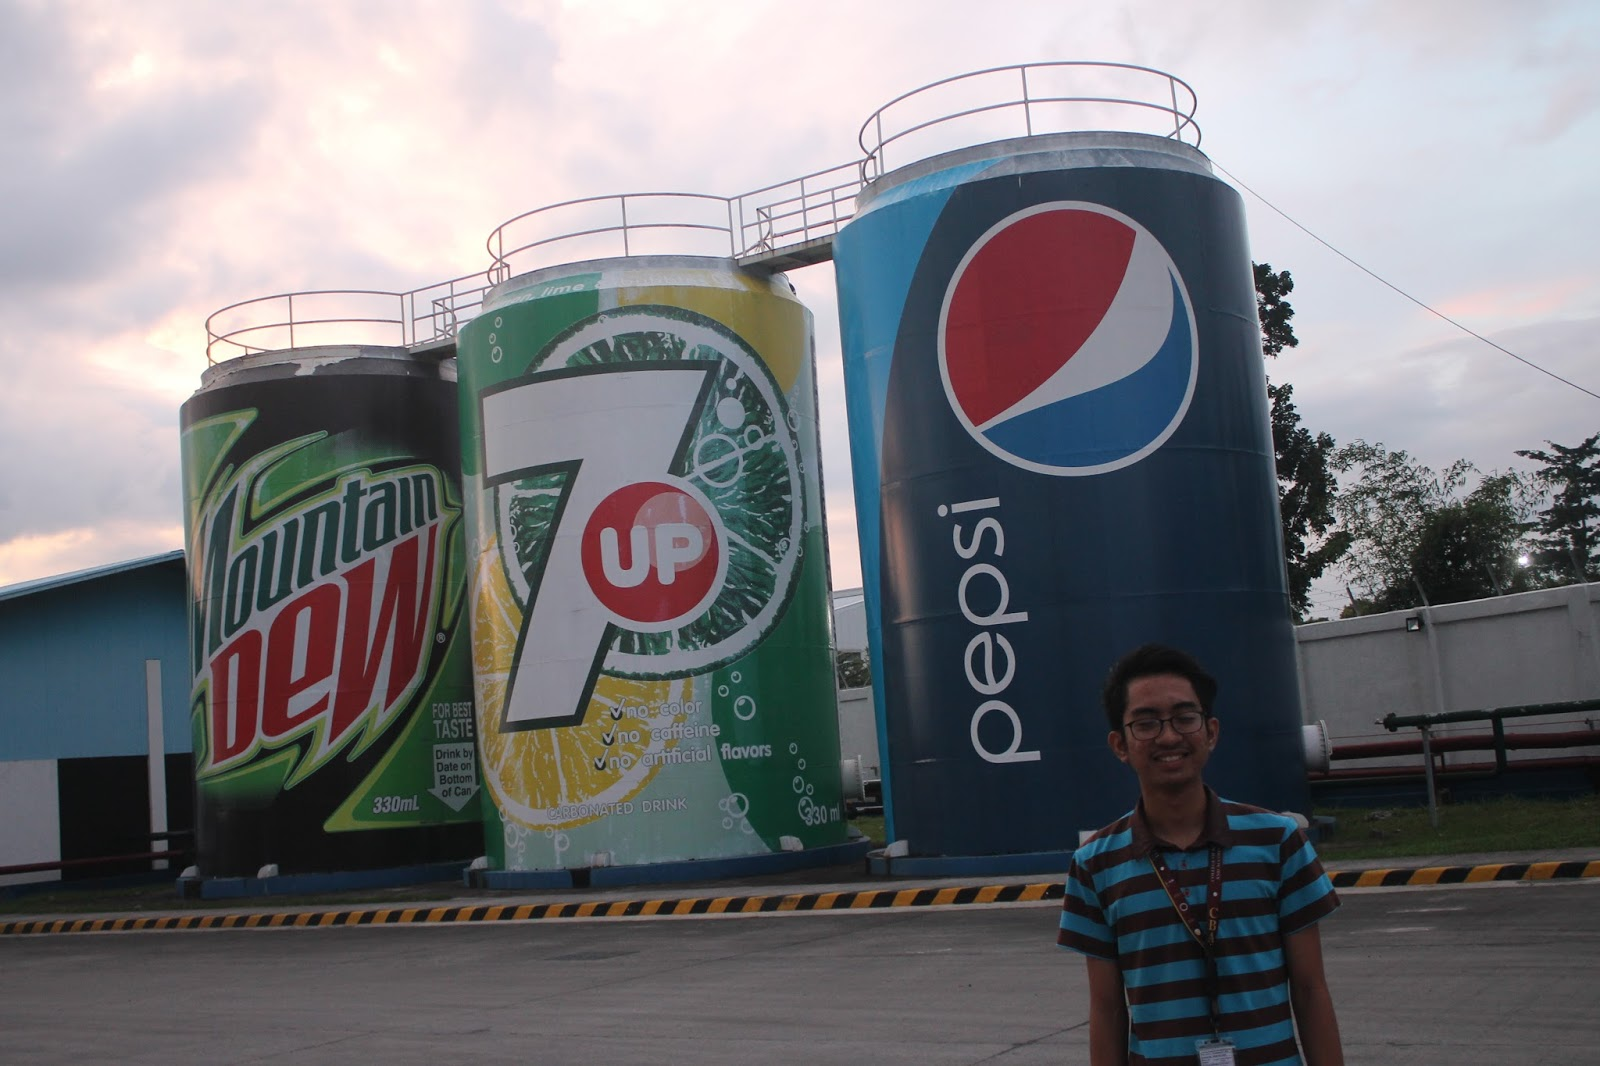 pepsi cola products philippines inc This page offers an in-depth profile of pepsi cola products phils inc, including a general overview of the company's business and key management.